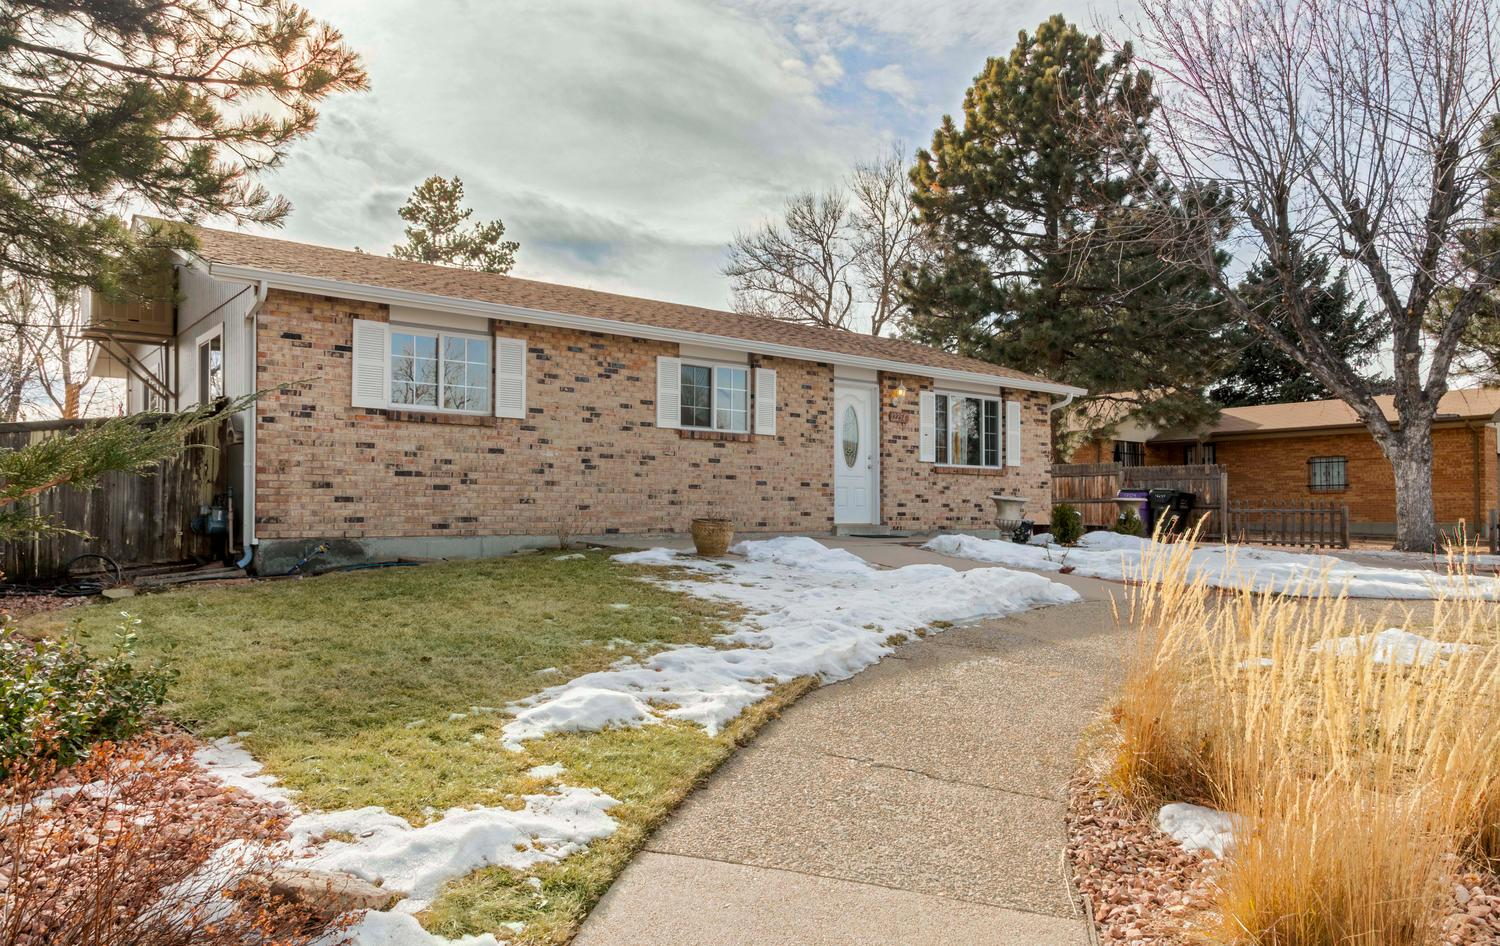 12254 E Berkeley Pl, Denver, CO 80239